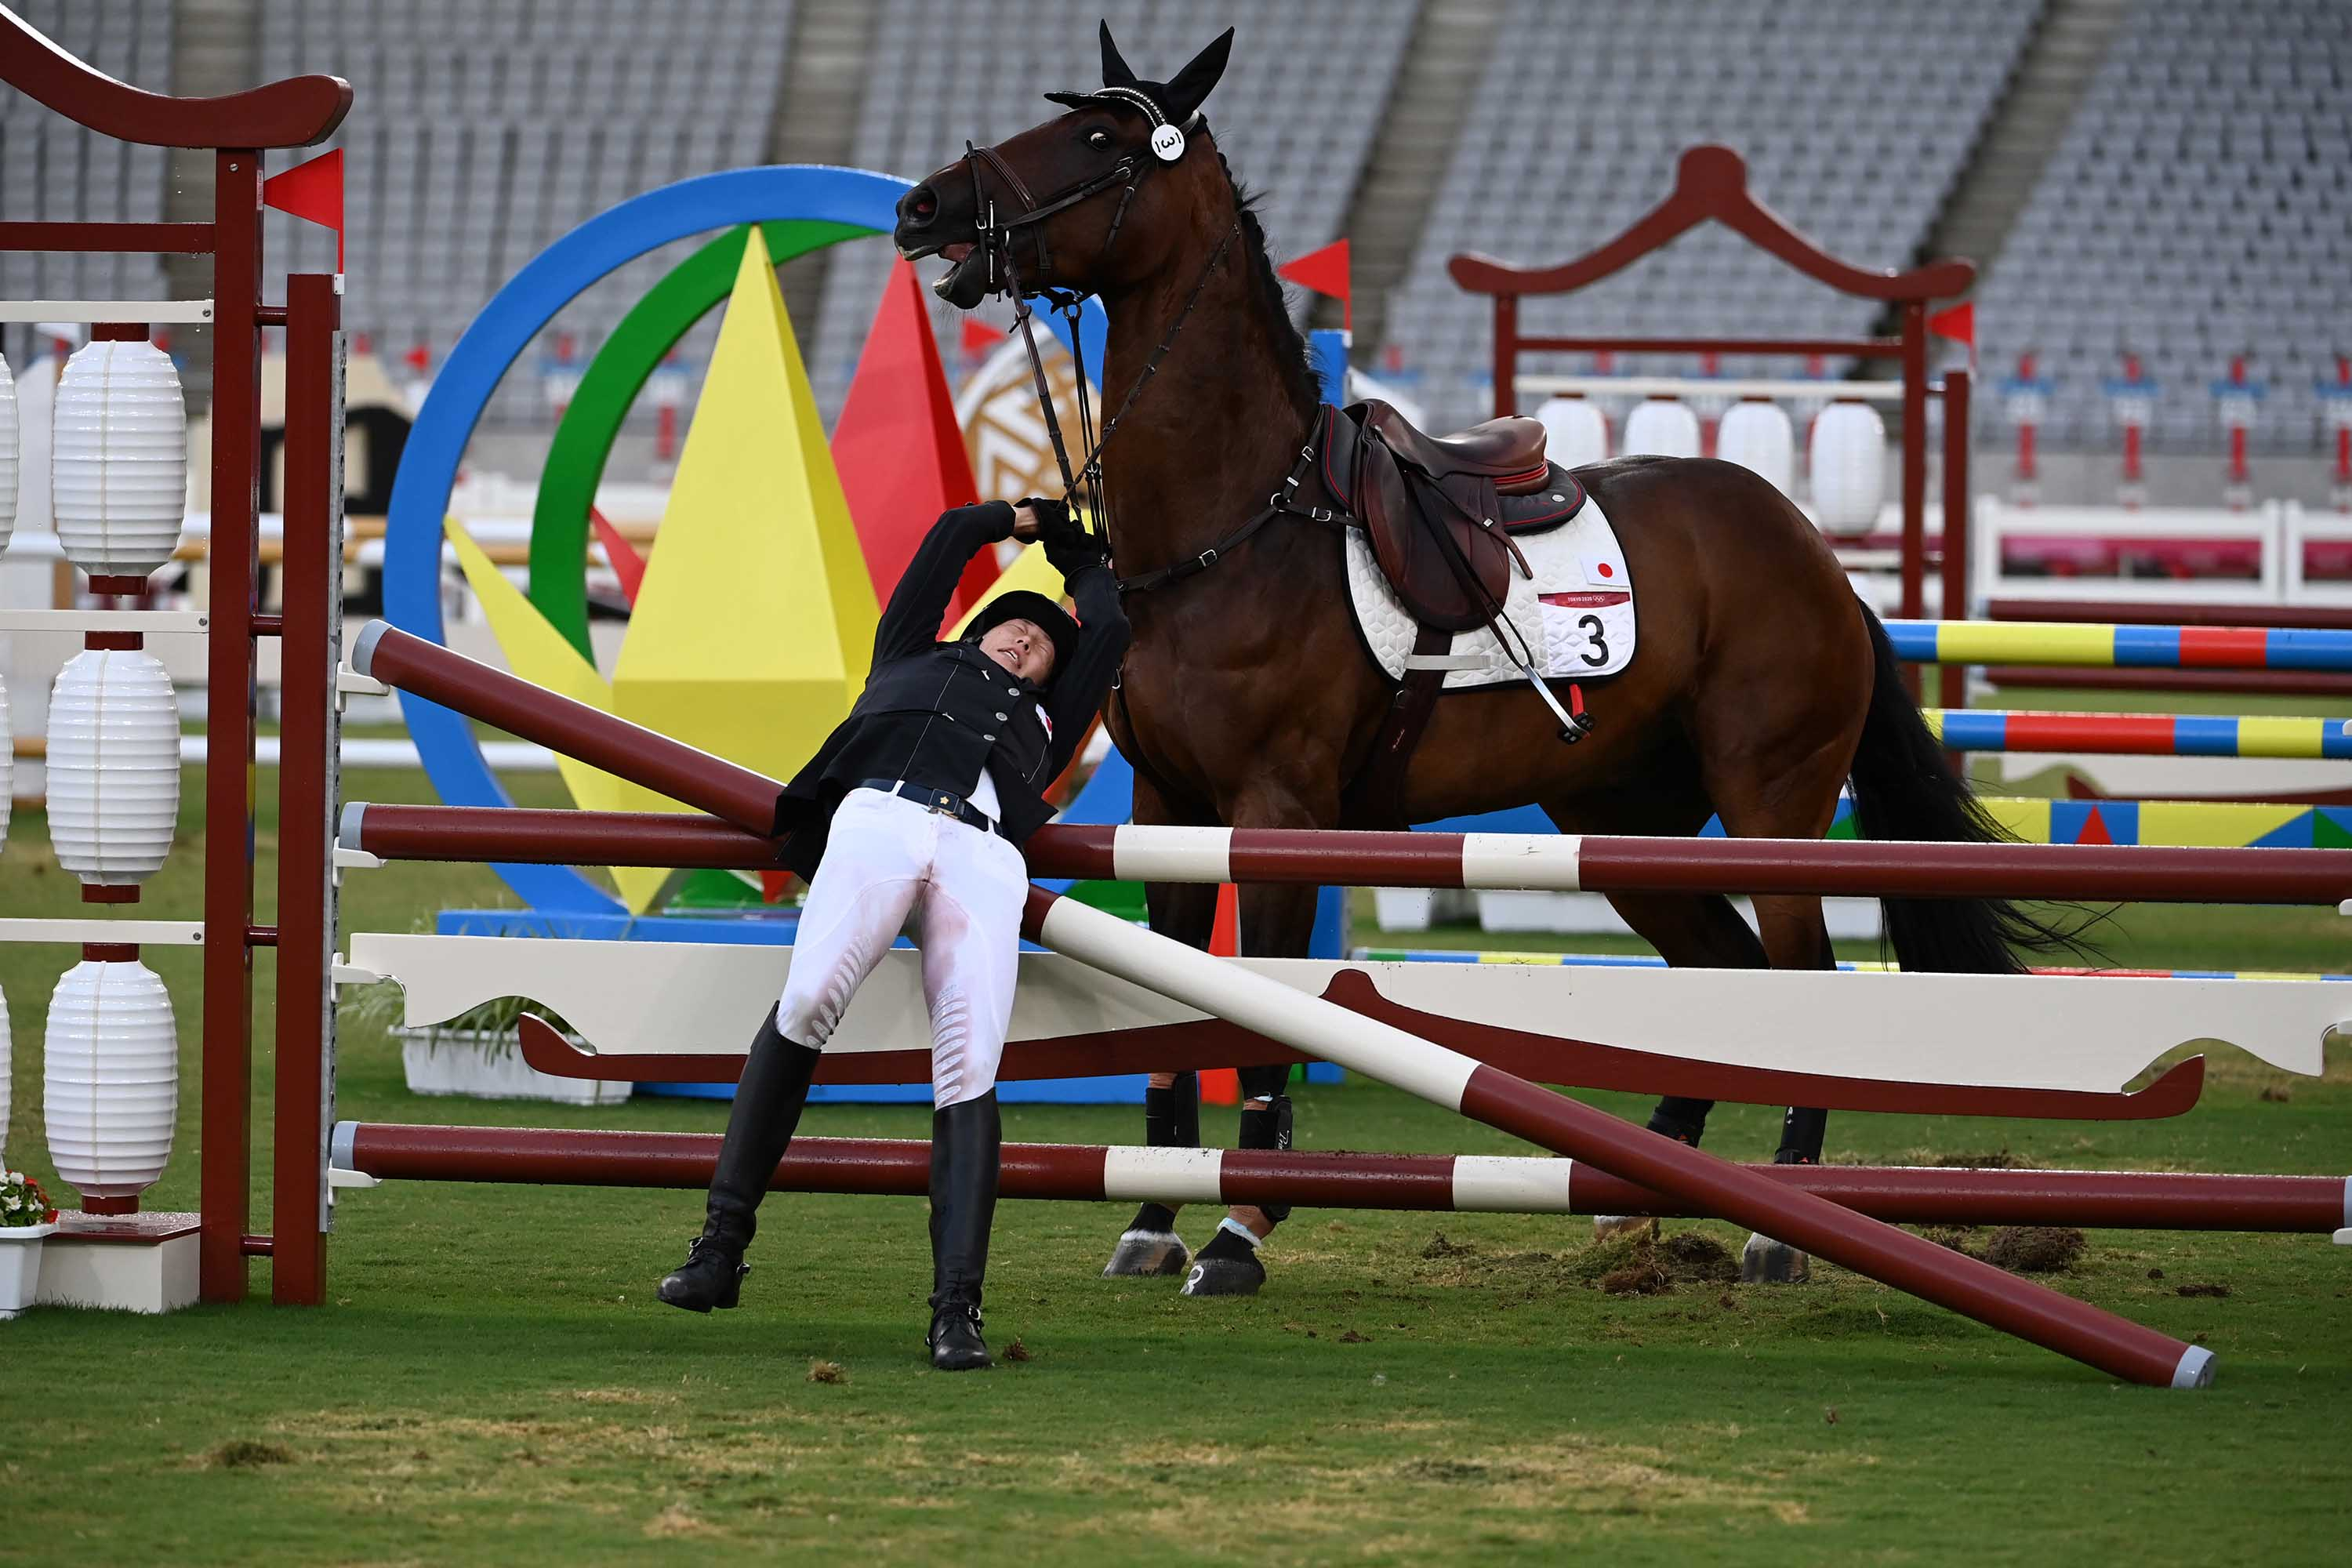 Annika Schleu of Germany falls after her horse refused to jump during the modern pentathlon on August 6.